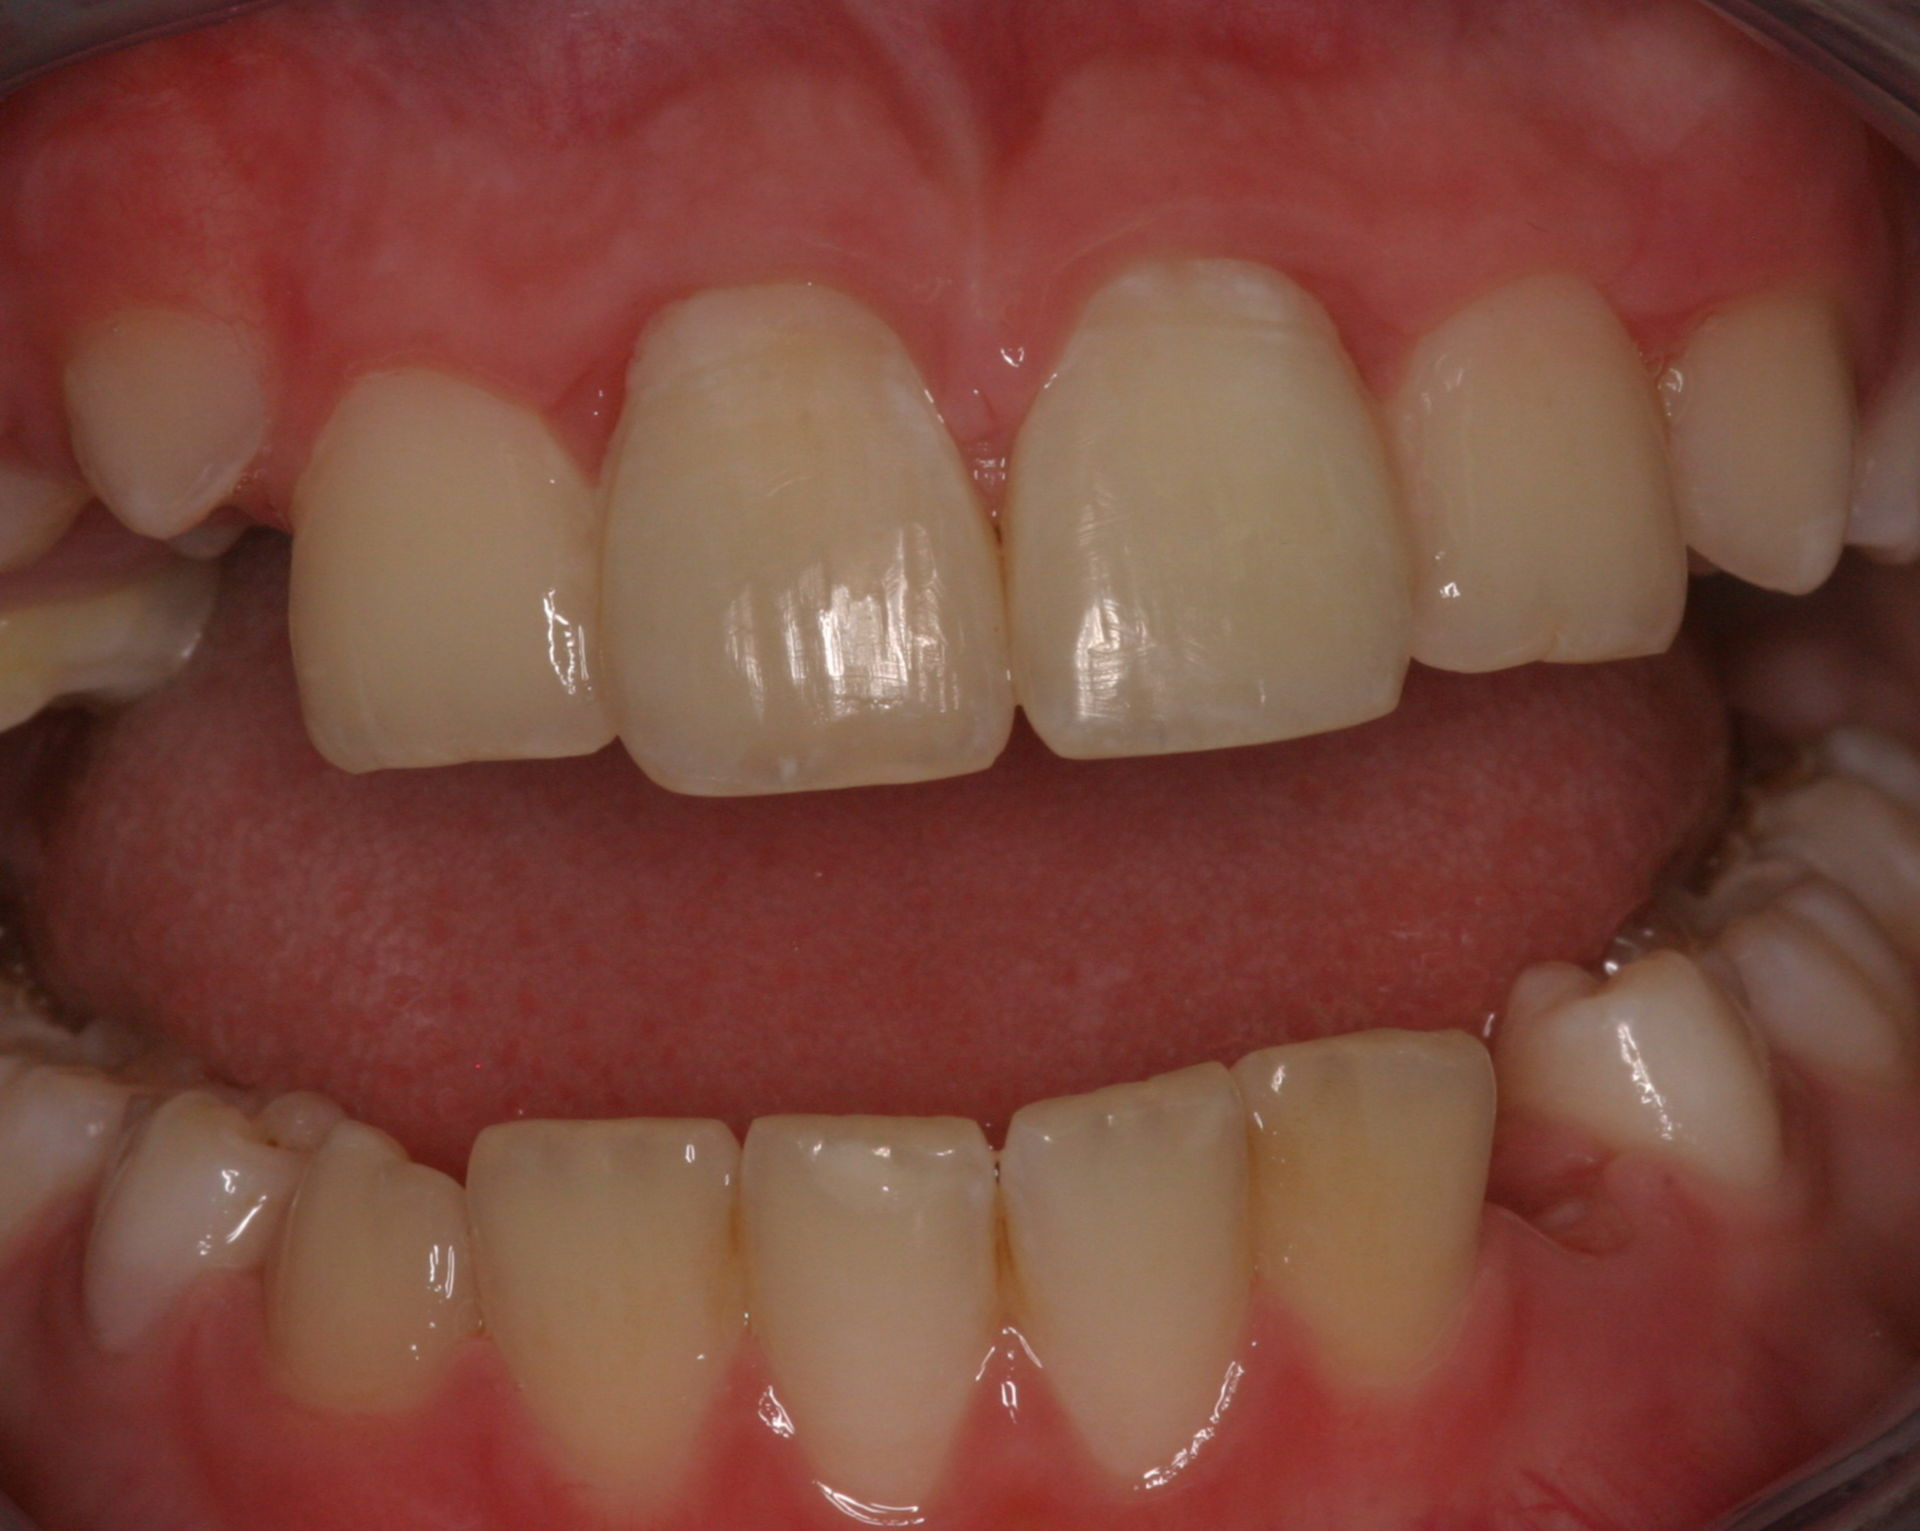 State of the teeth, 6 months after a complex trauma to the frontal teeth